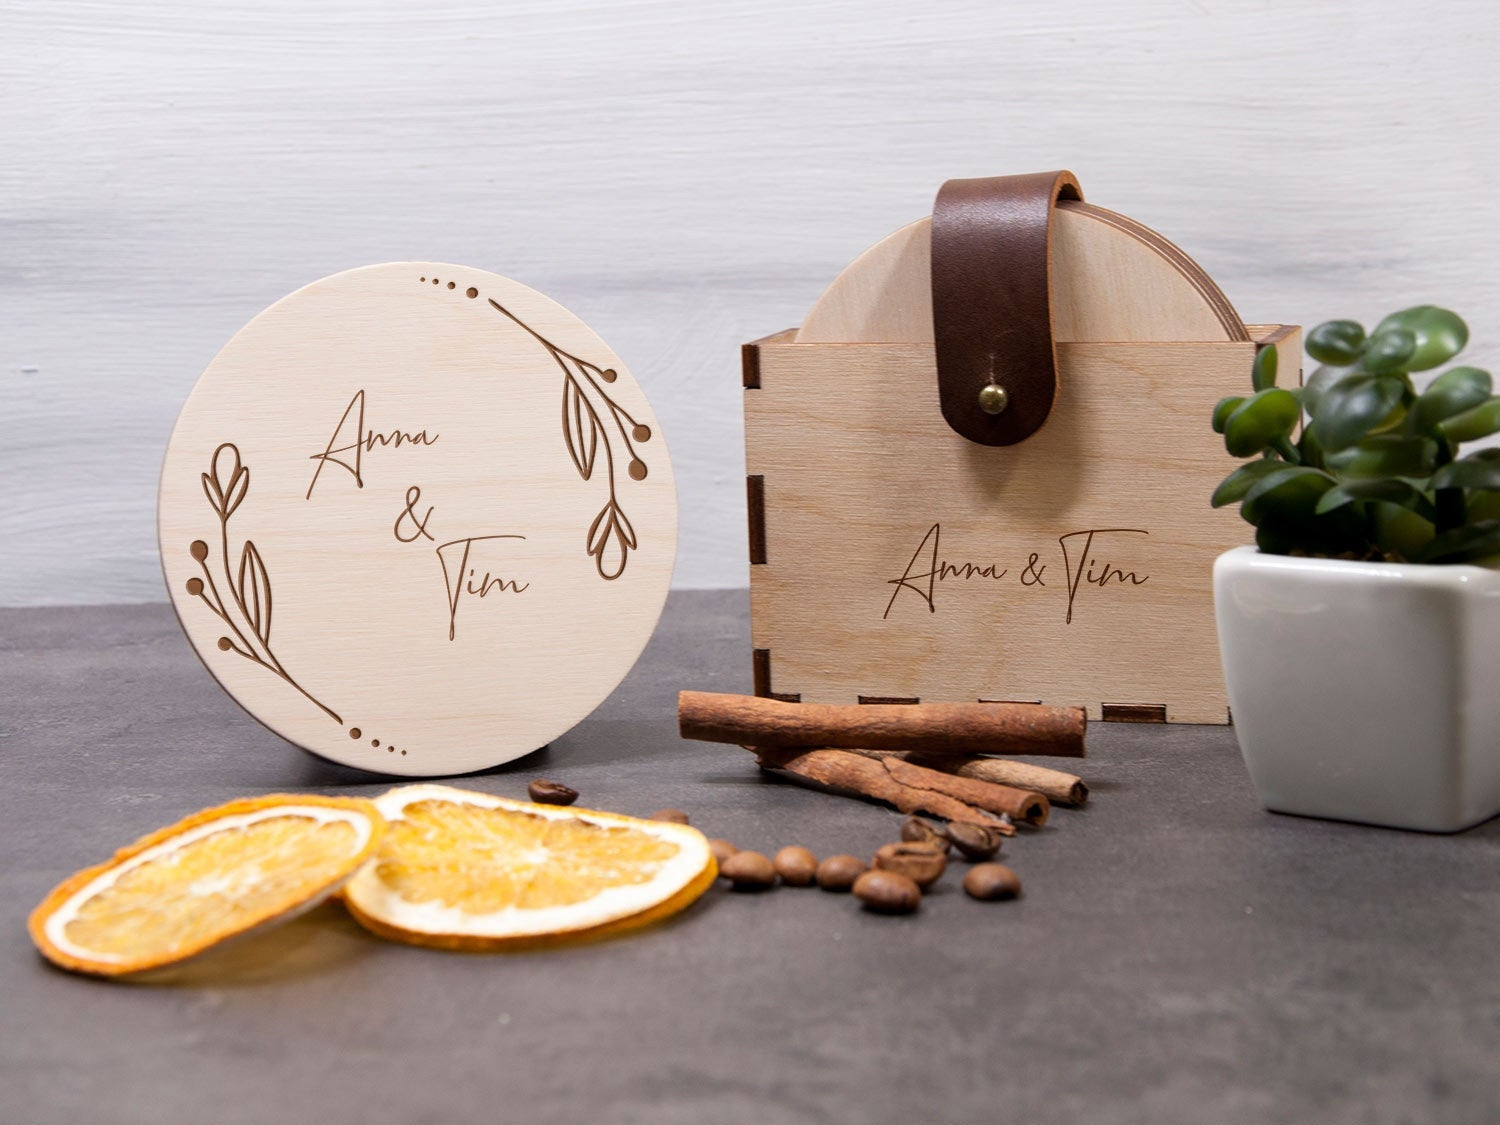 Wedding Coaster Gift for Wife from Husband Engagement Gift Coasters Set Floral Wheath Engraved Coaster Rustic Gift Wood Coaster Wine Coaster